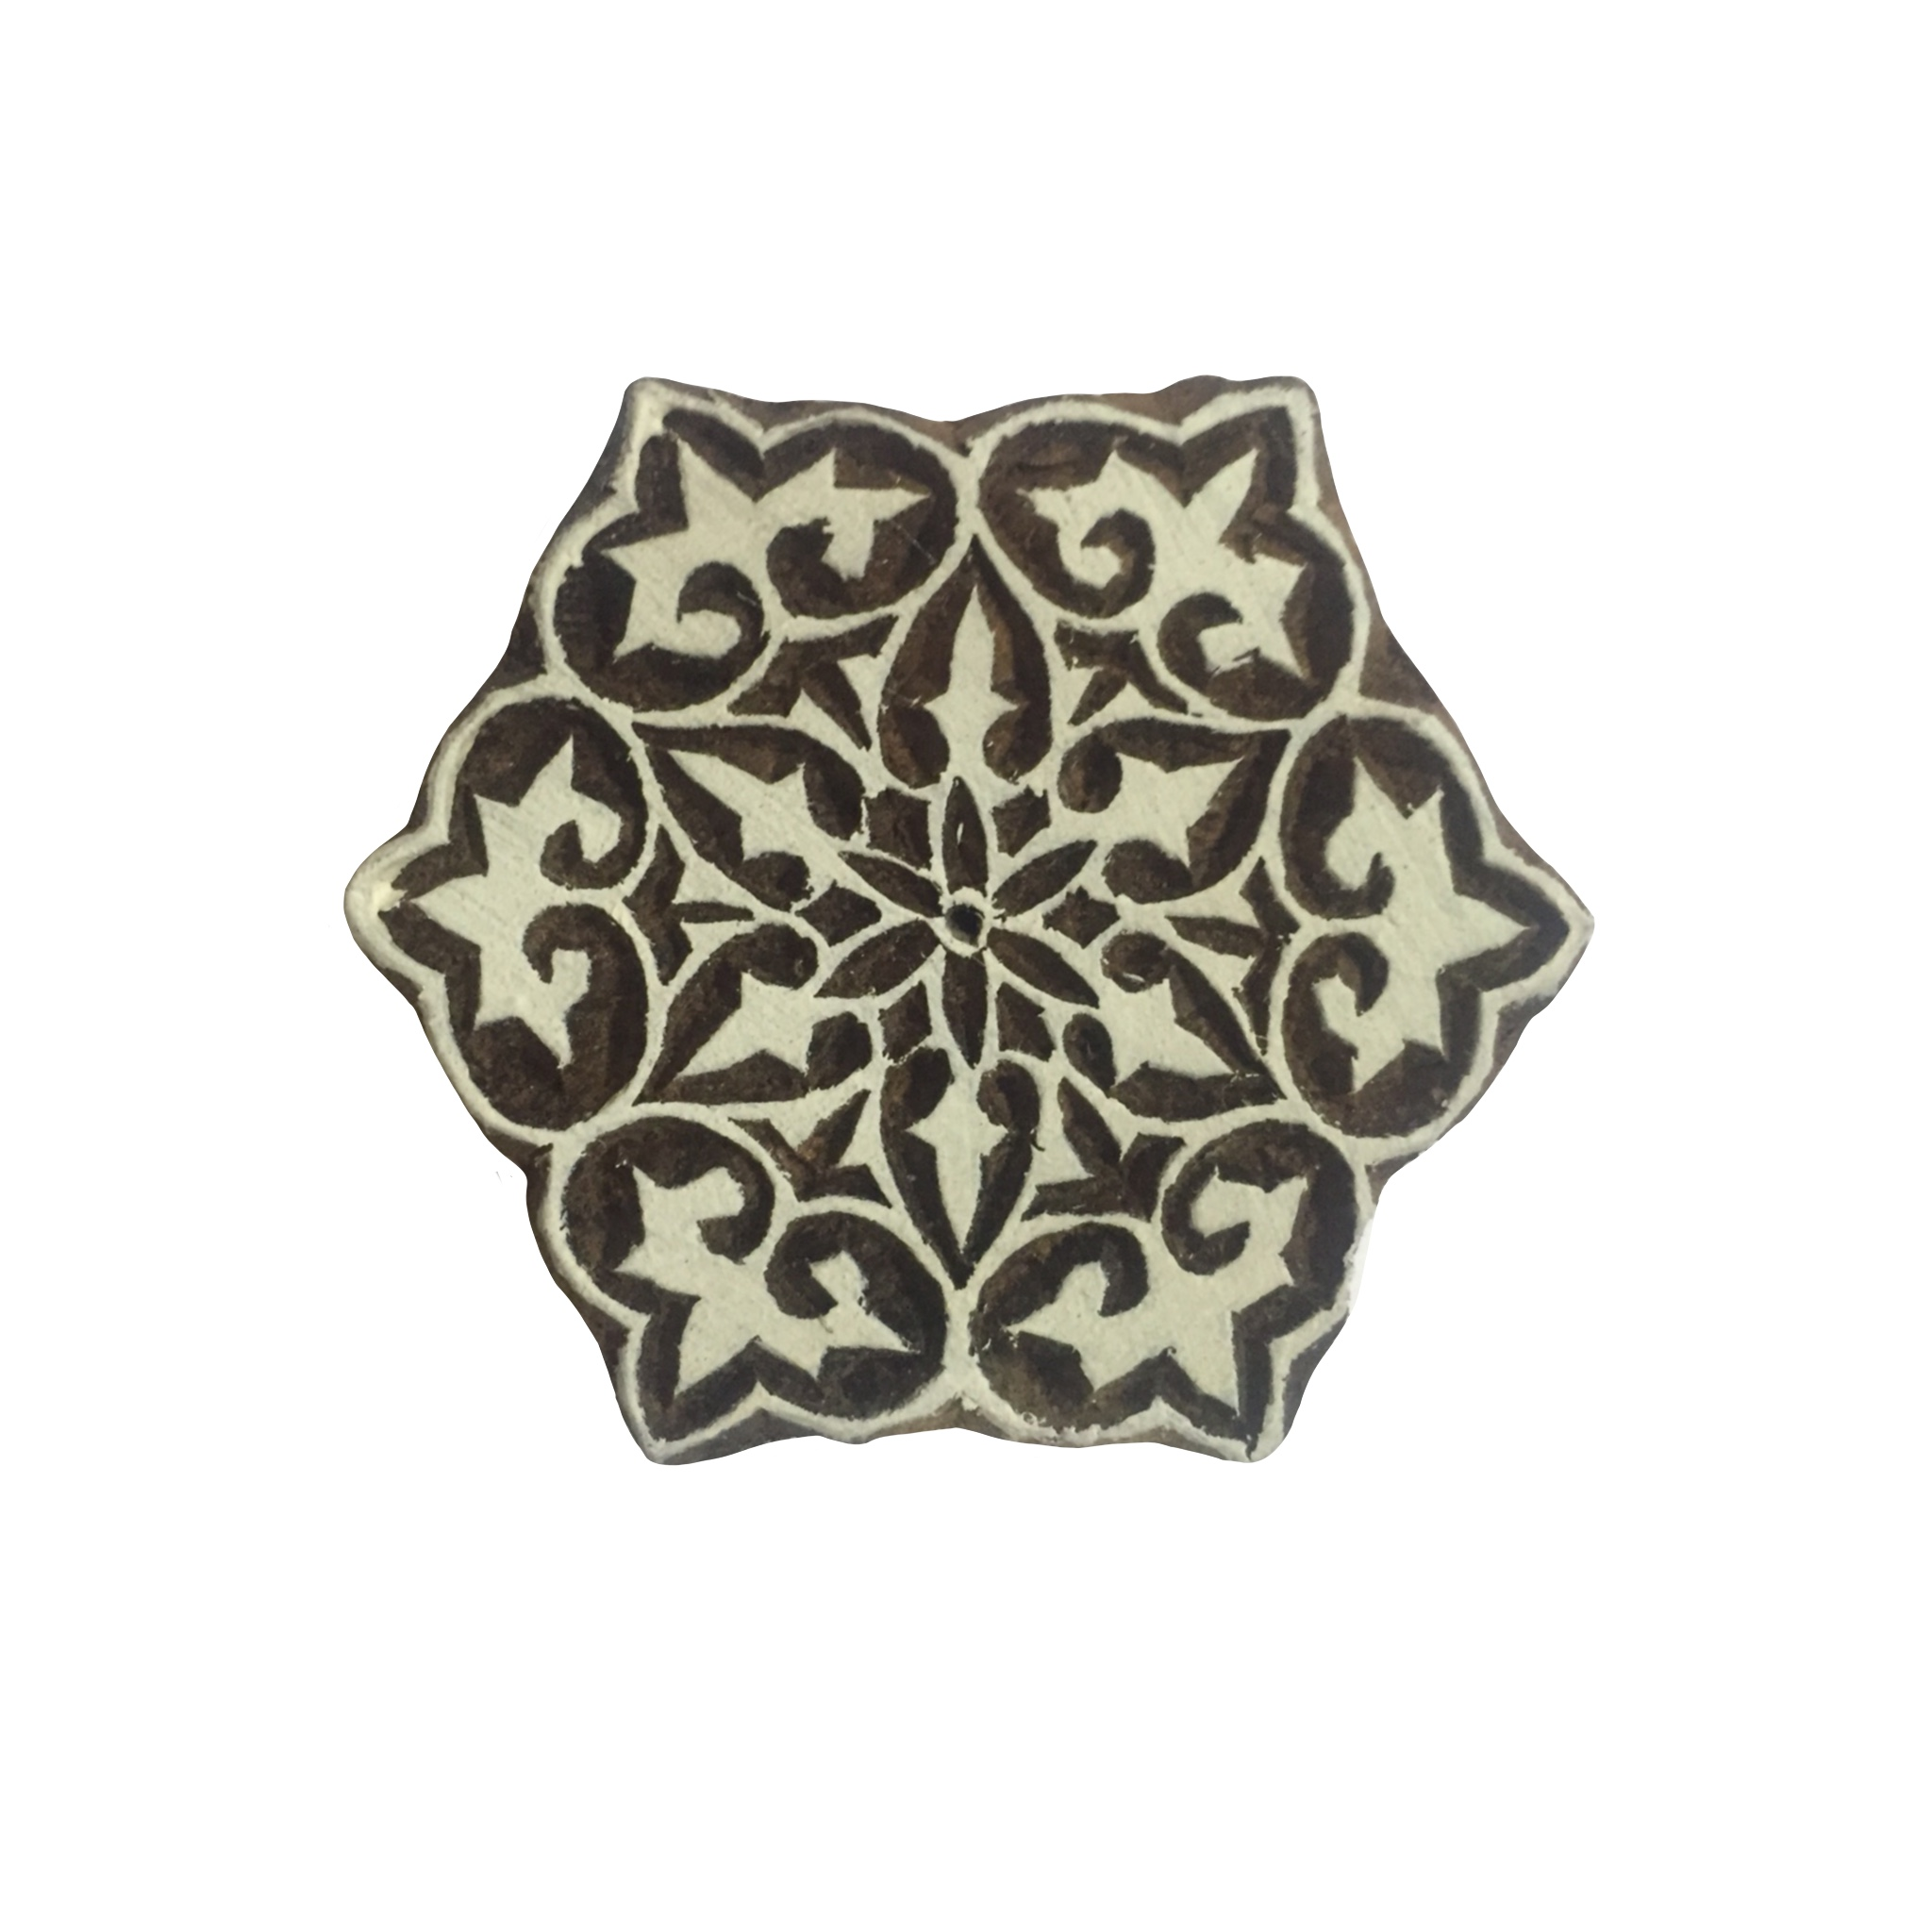 Block Print Stamp Star Flower  M 145